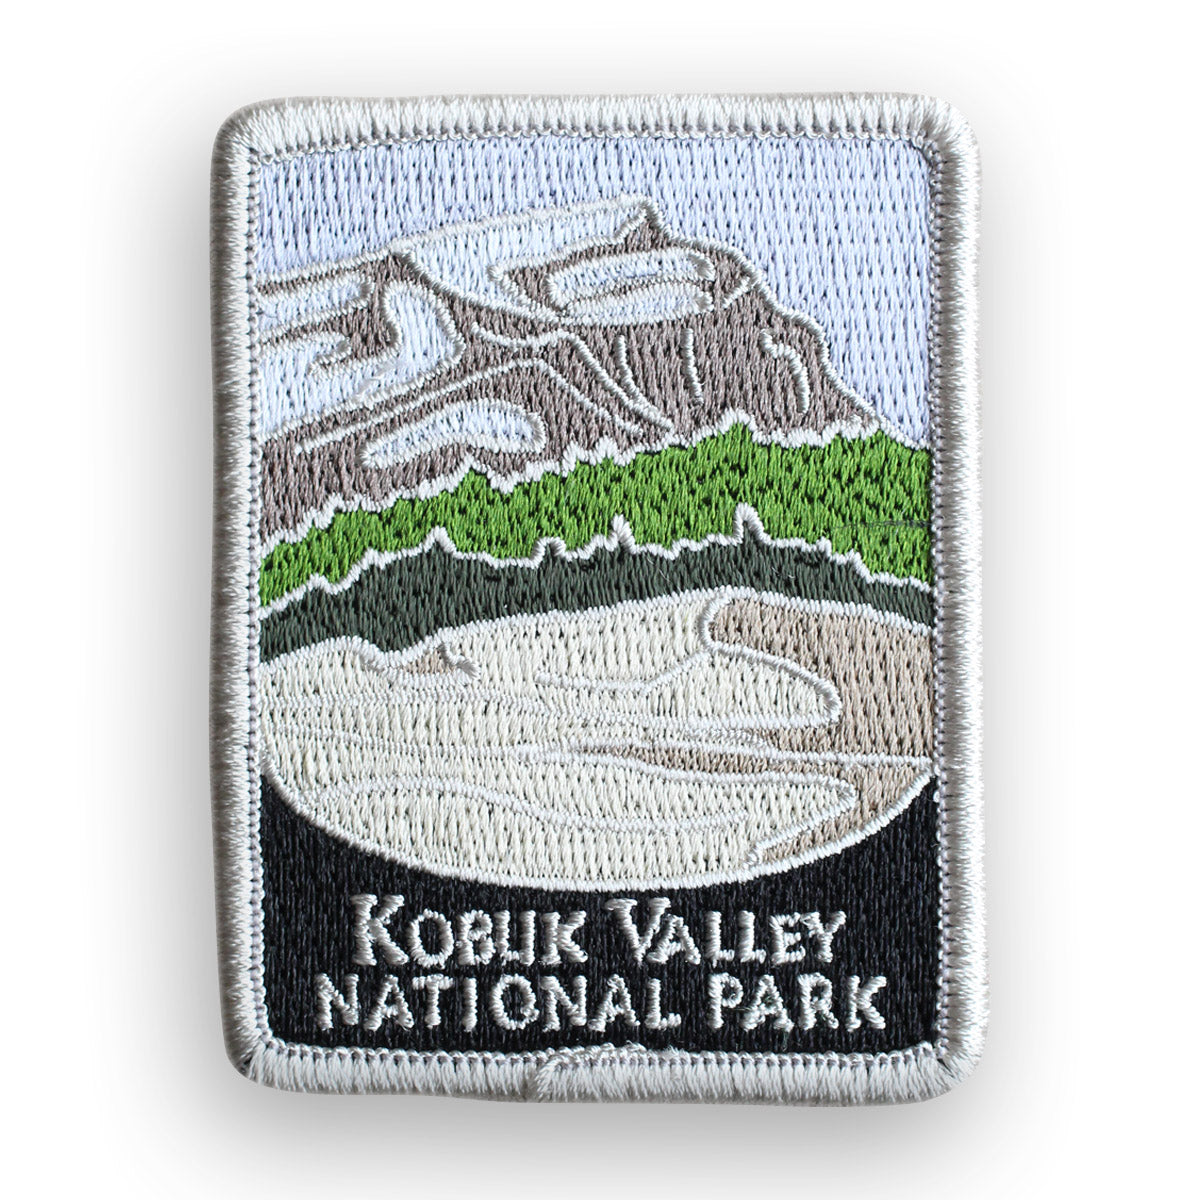 Kobuk Valley National Park Traveler Patch